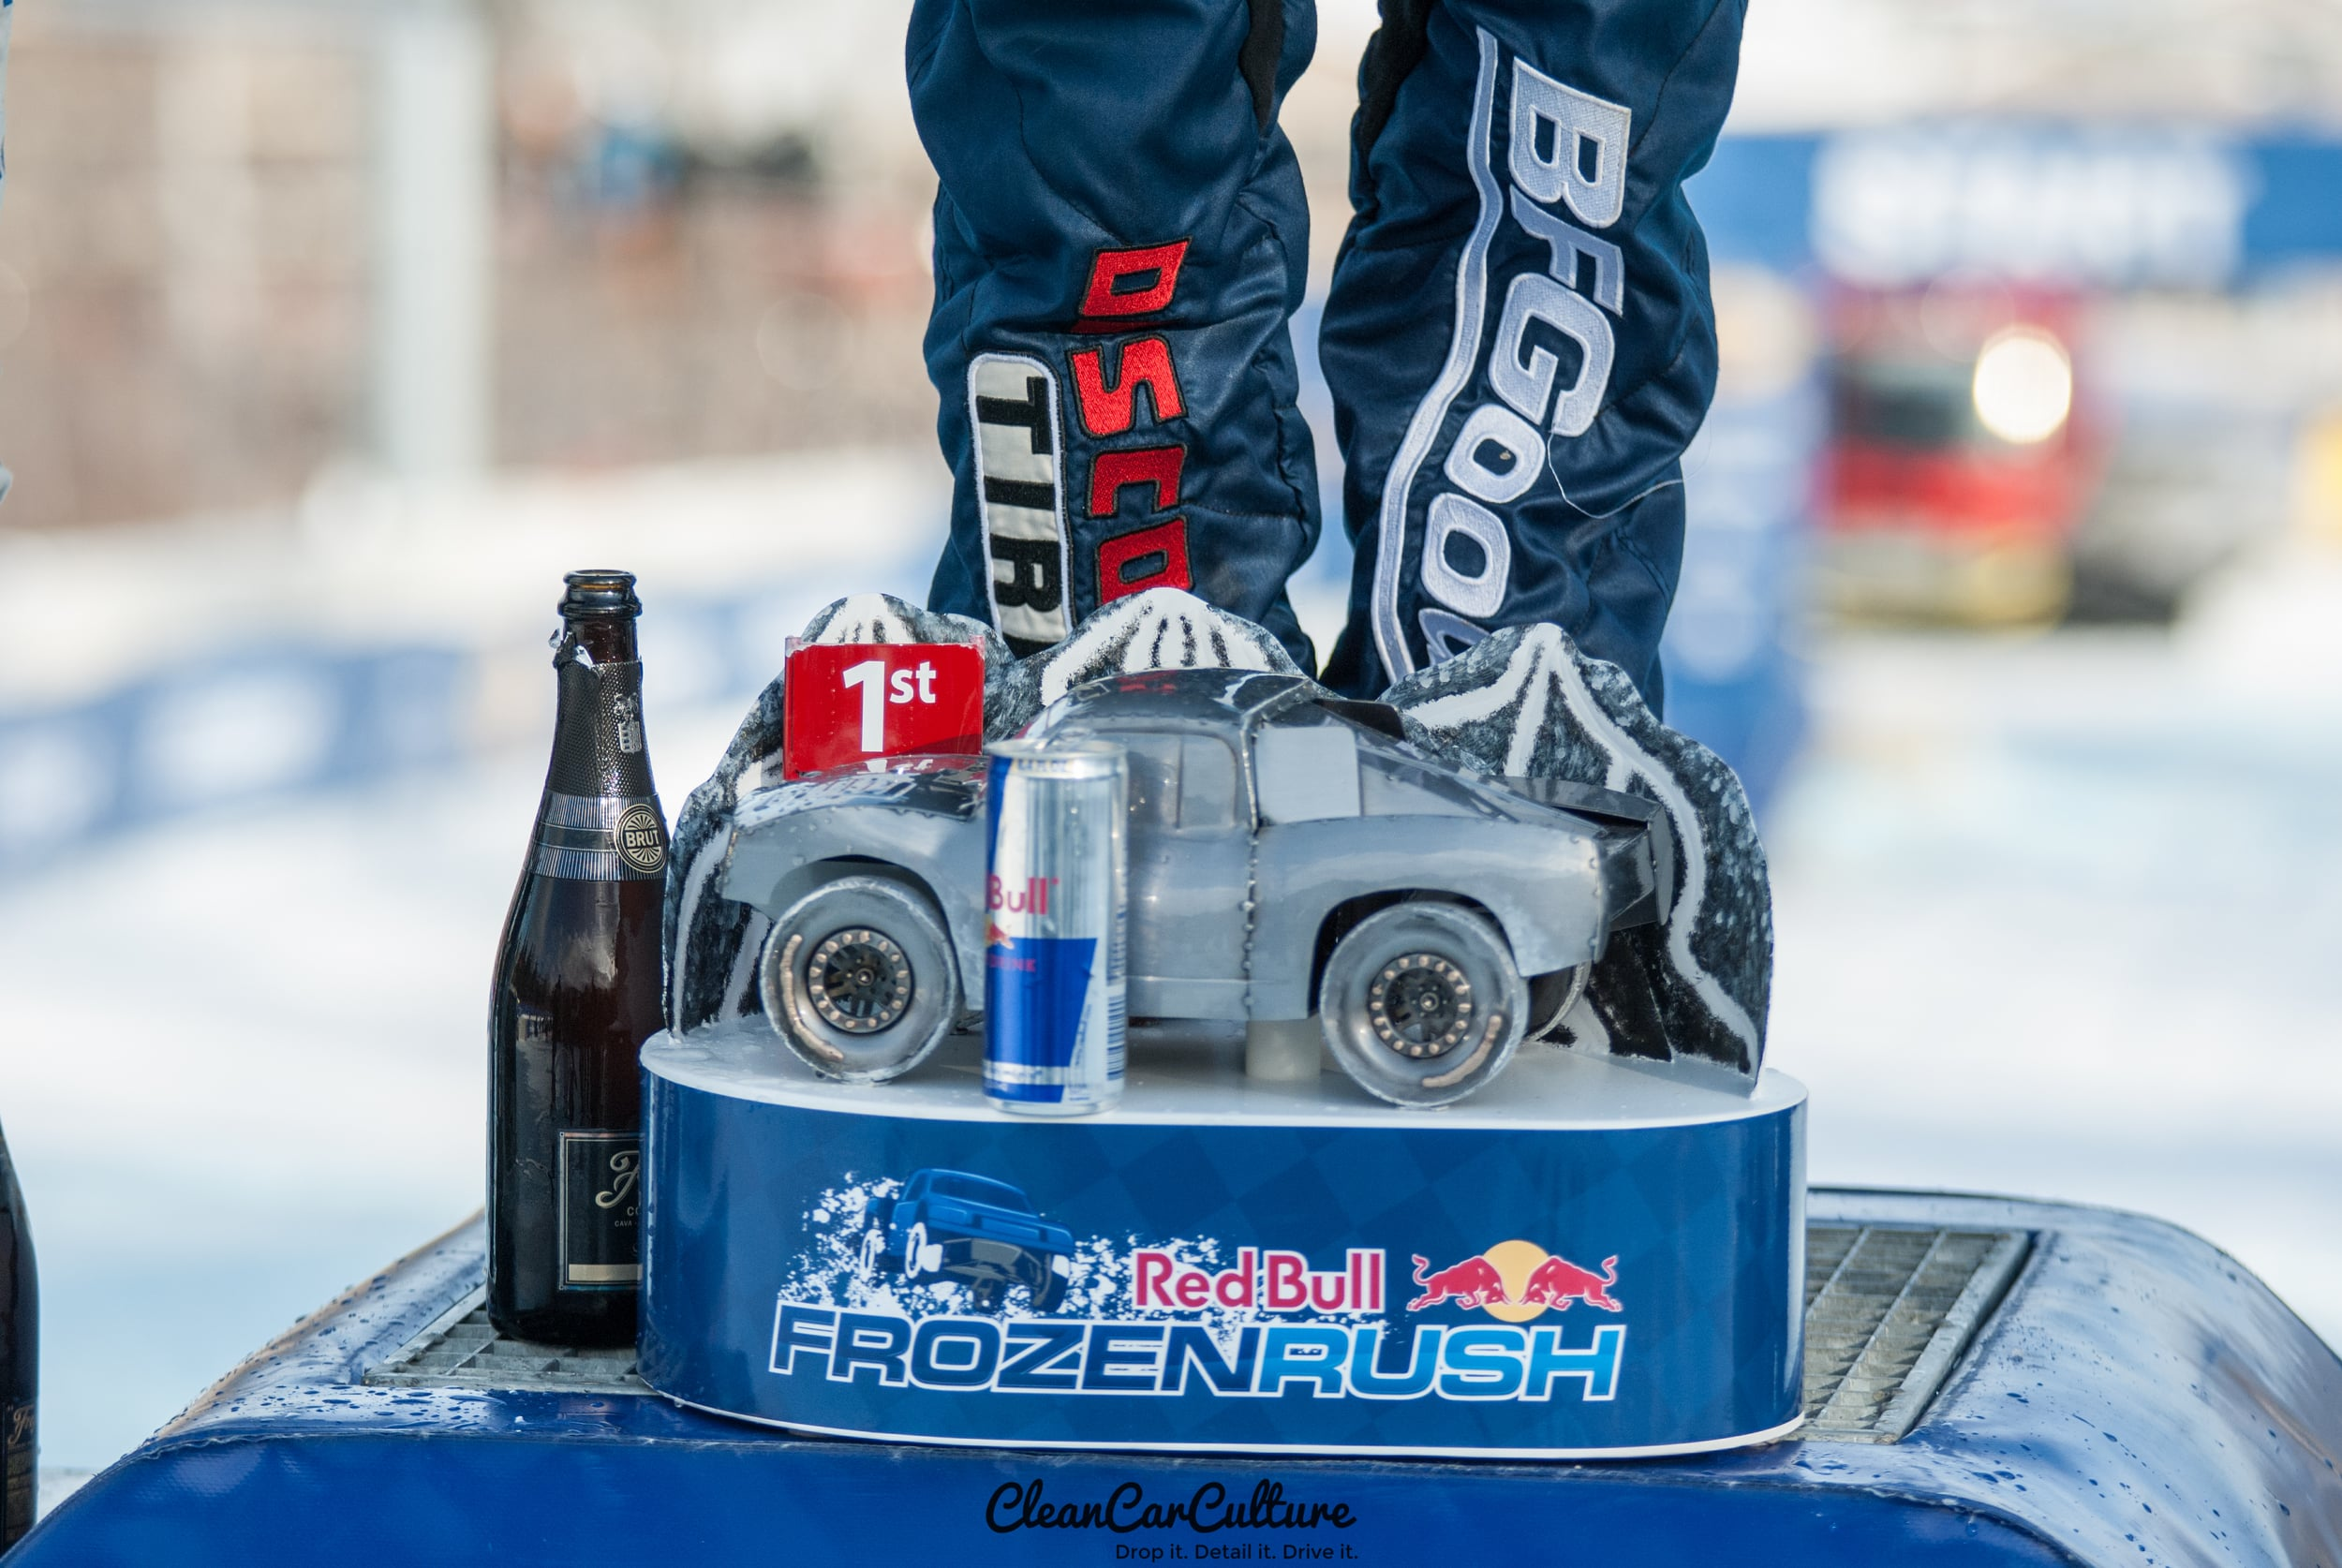 FrozenRush2016-0543.jpg